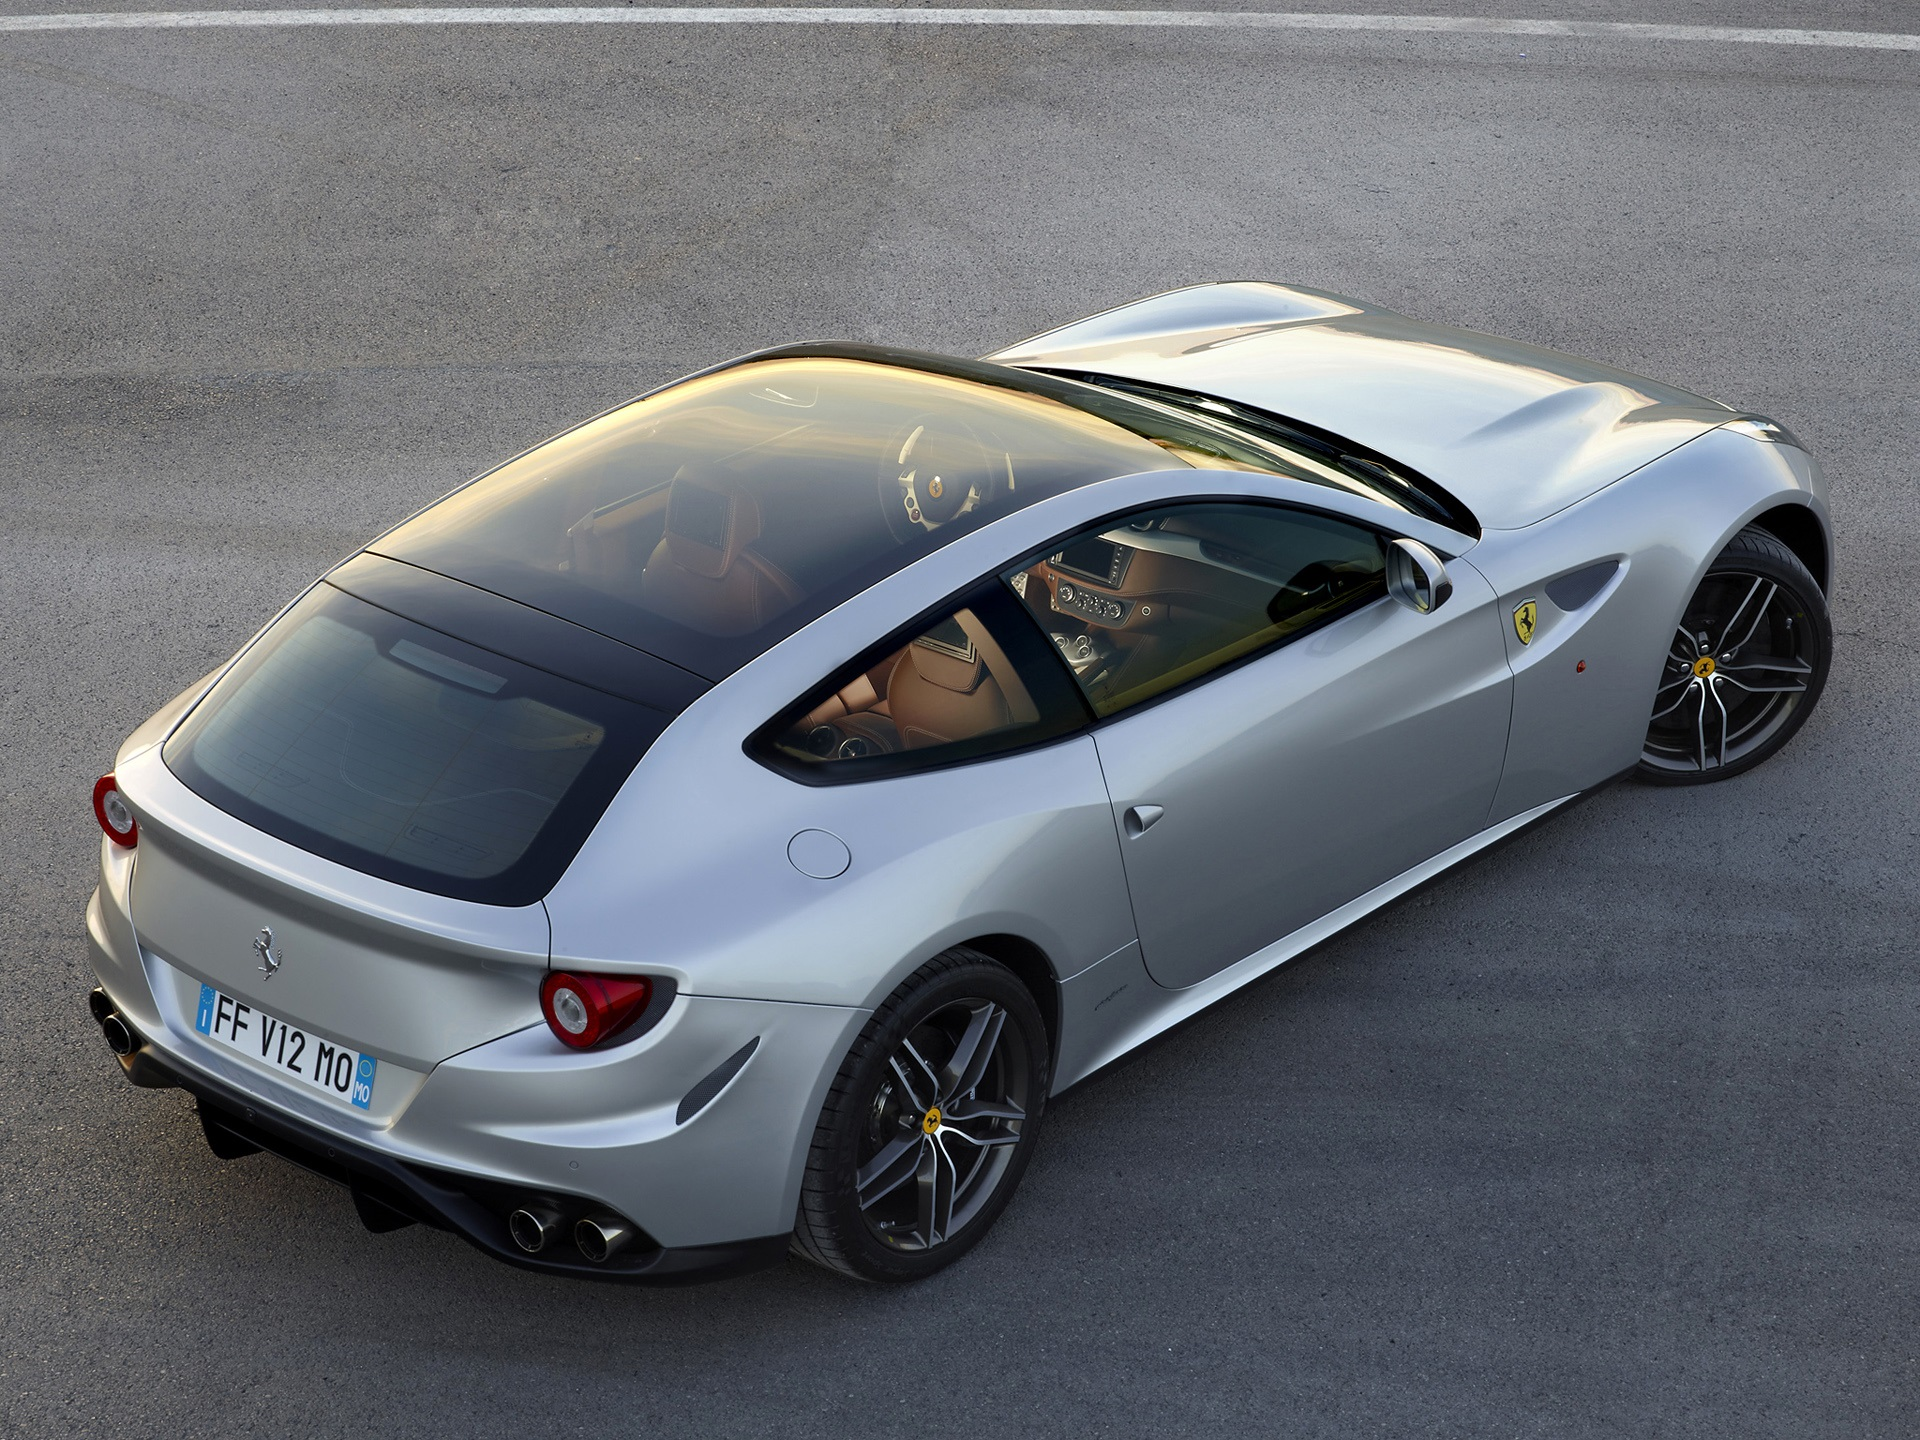 1920x1440 - Ferrari FF Wallpapers 36